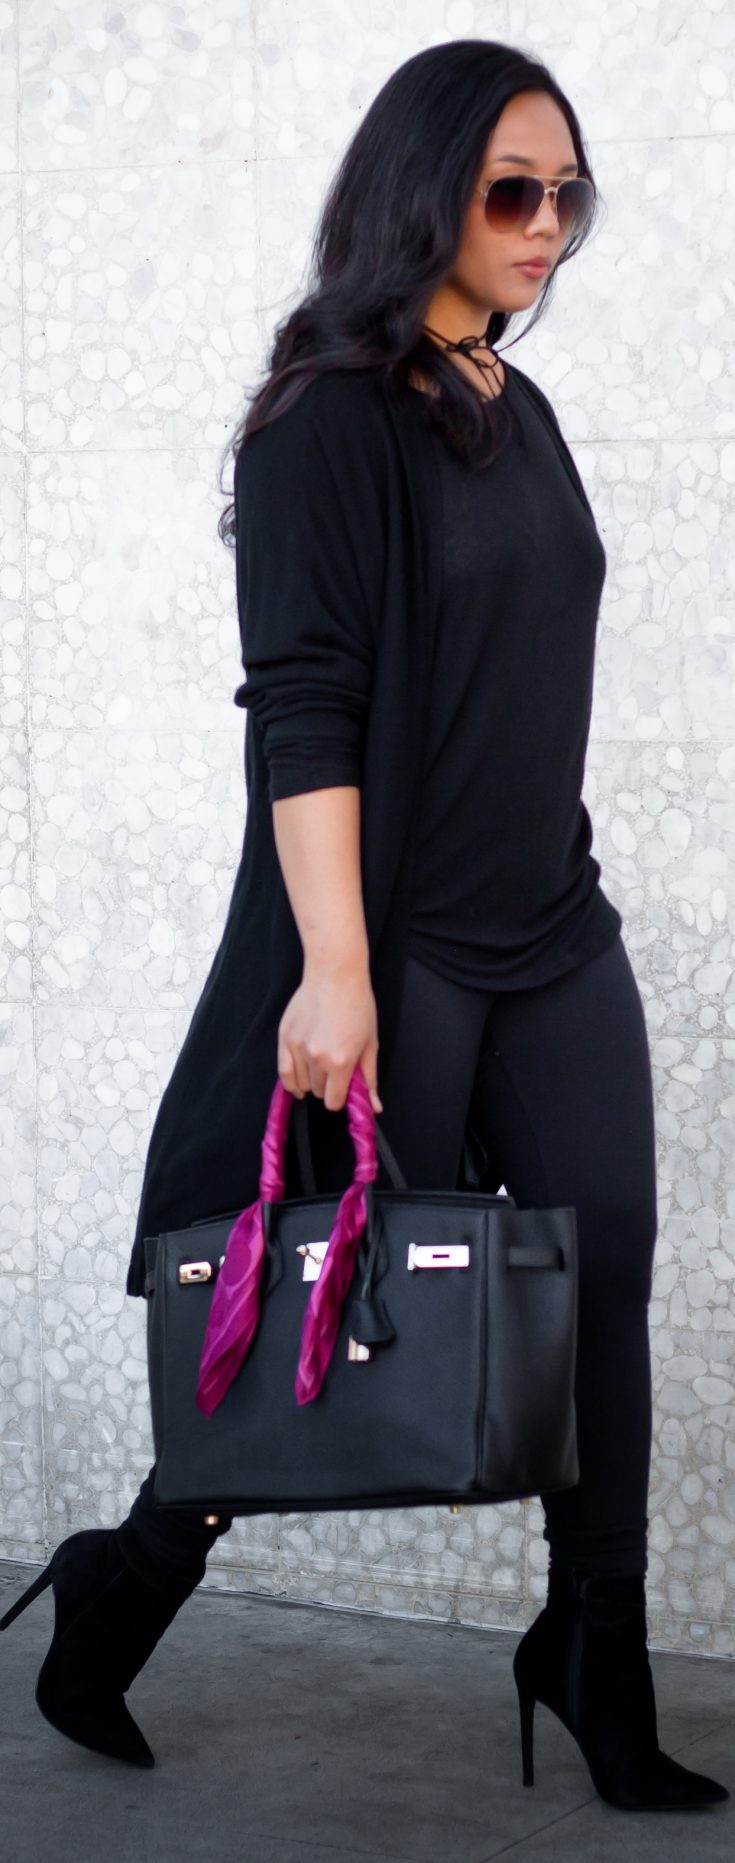 Shop the look: Aviator Sunglasses: $6.99, Velvet Wrap Choker: $7.98, Cardigan: $17.83, Tunic: $14.99, Leggings: $12.95, Shoes: $85.87, Handbag: $125 - THE BALLER ON A BUDGET